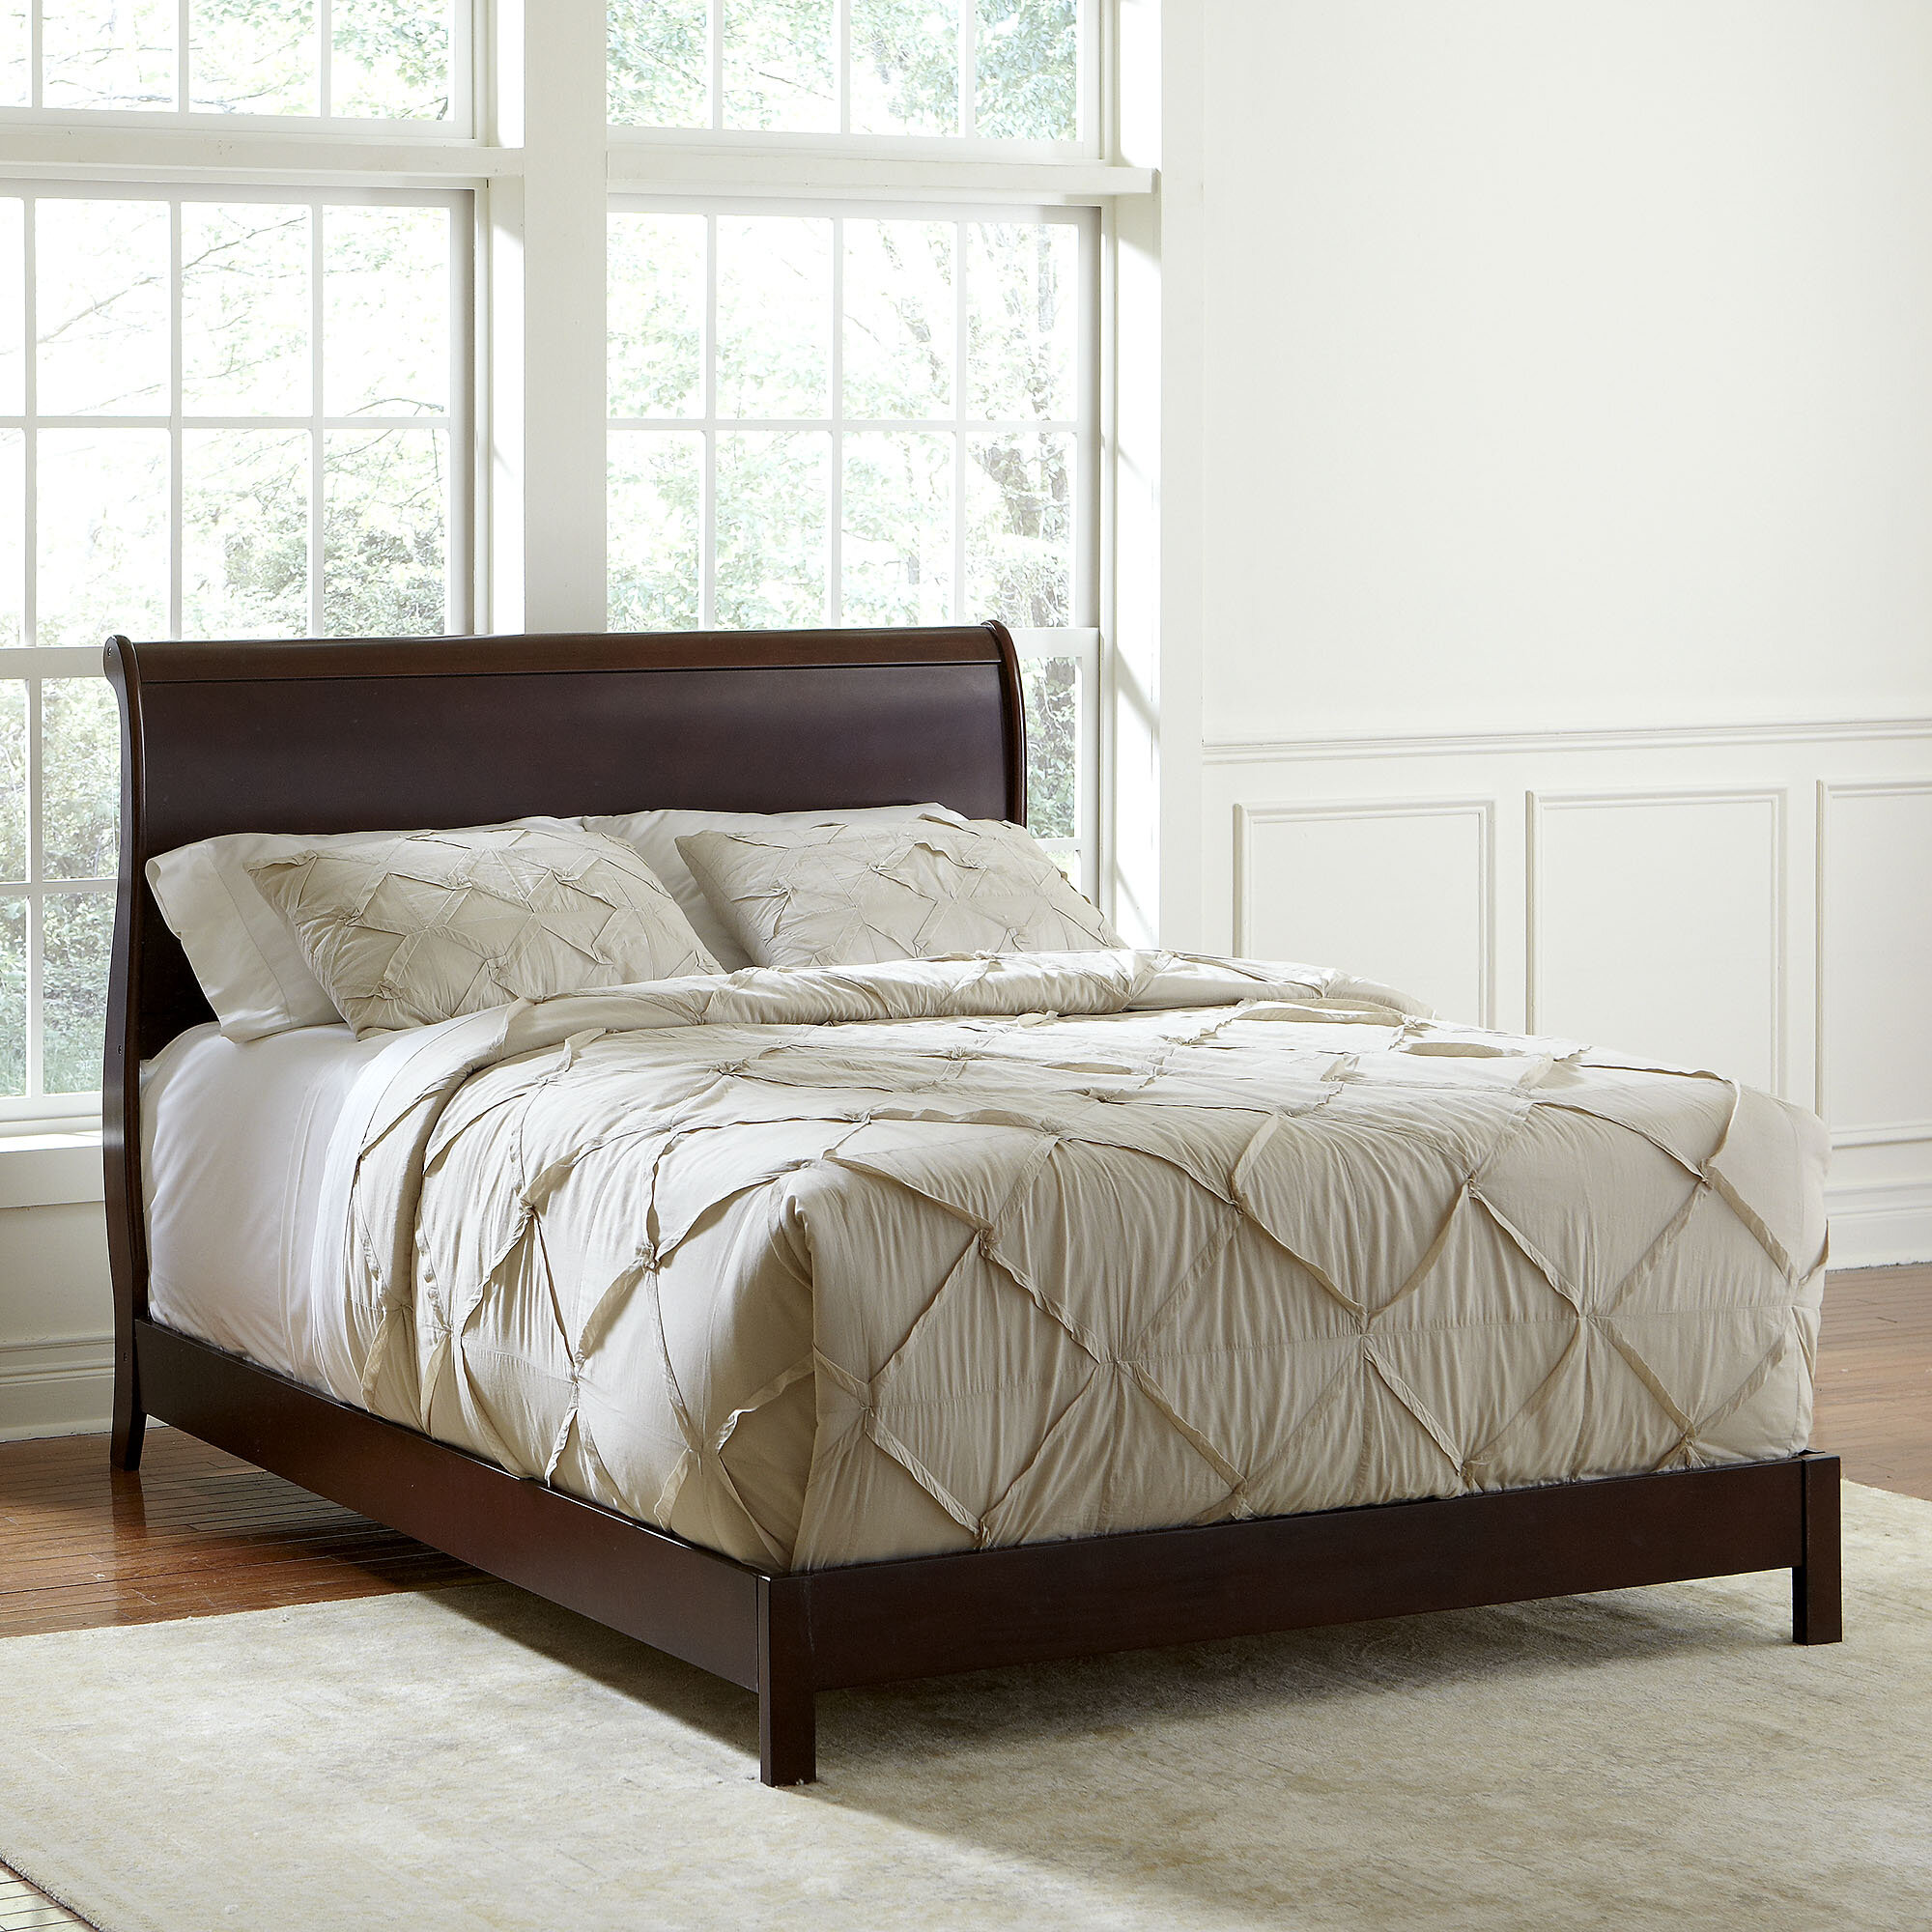 birch lanea lancaster sleigh bed reviews birch lane